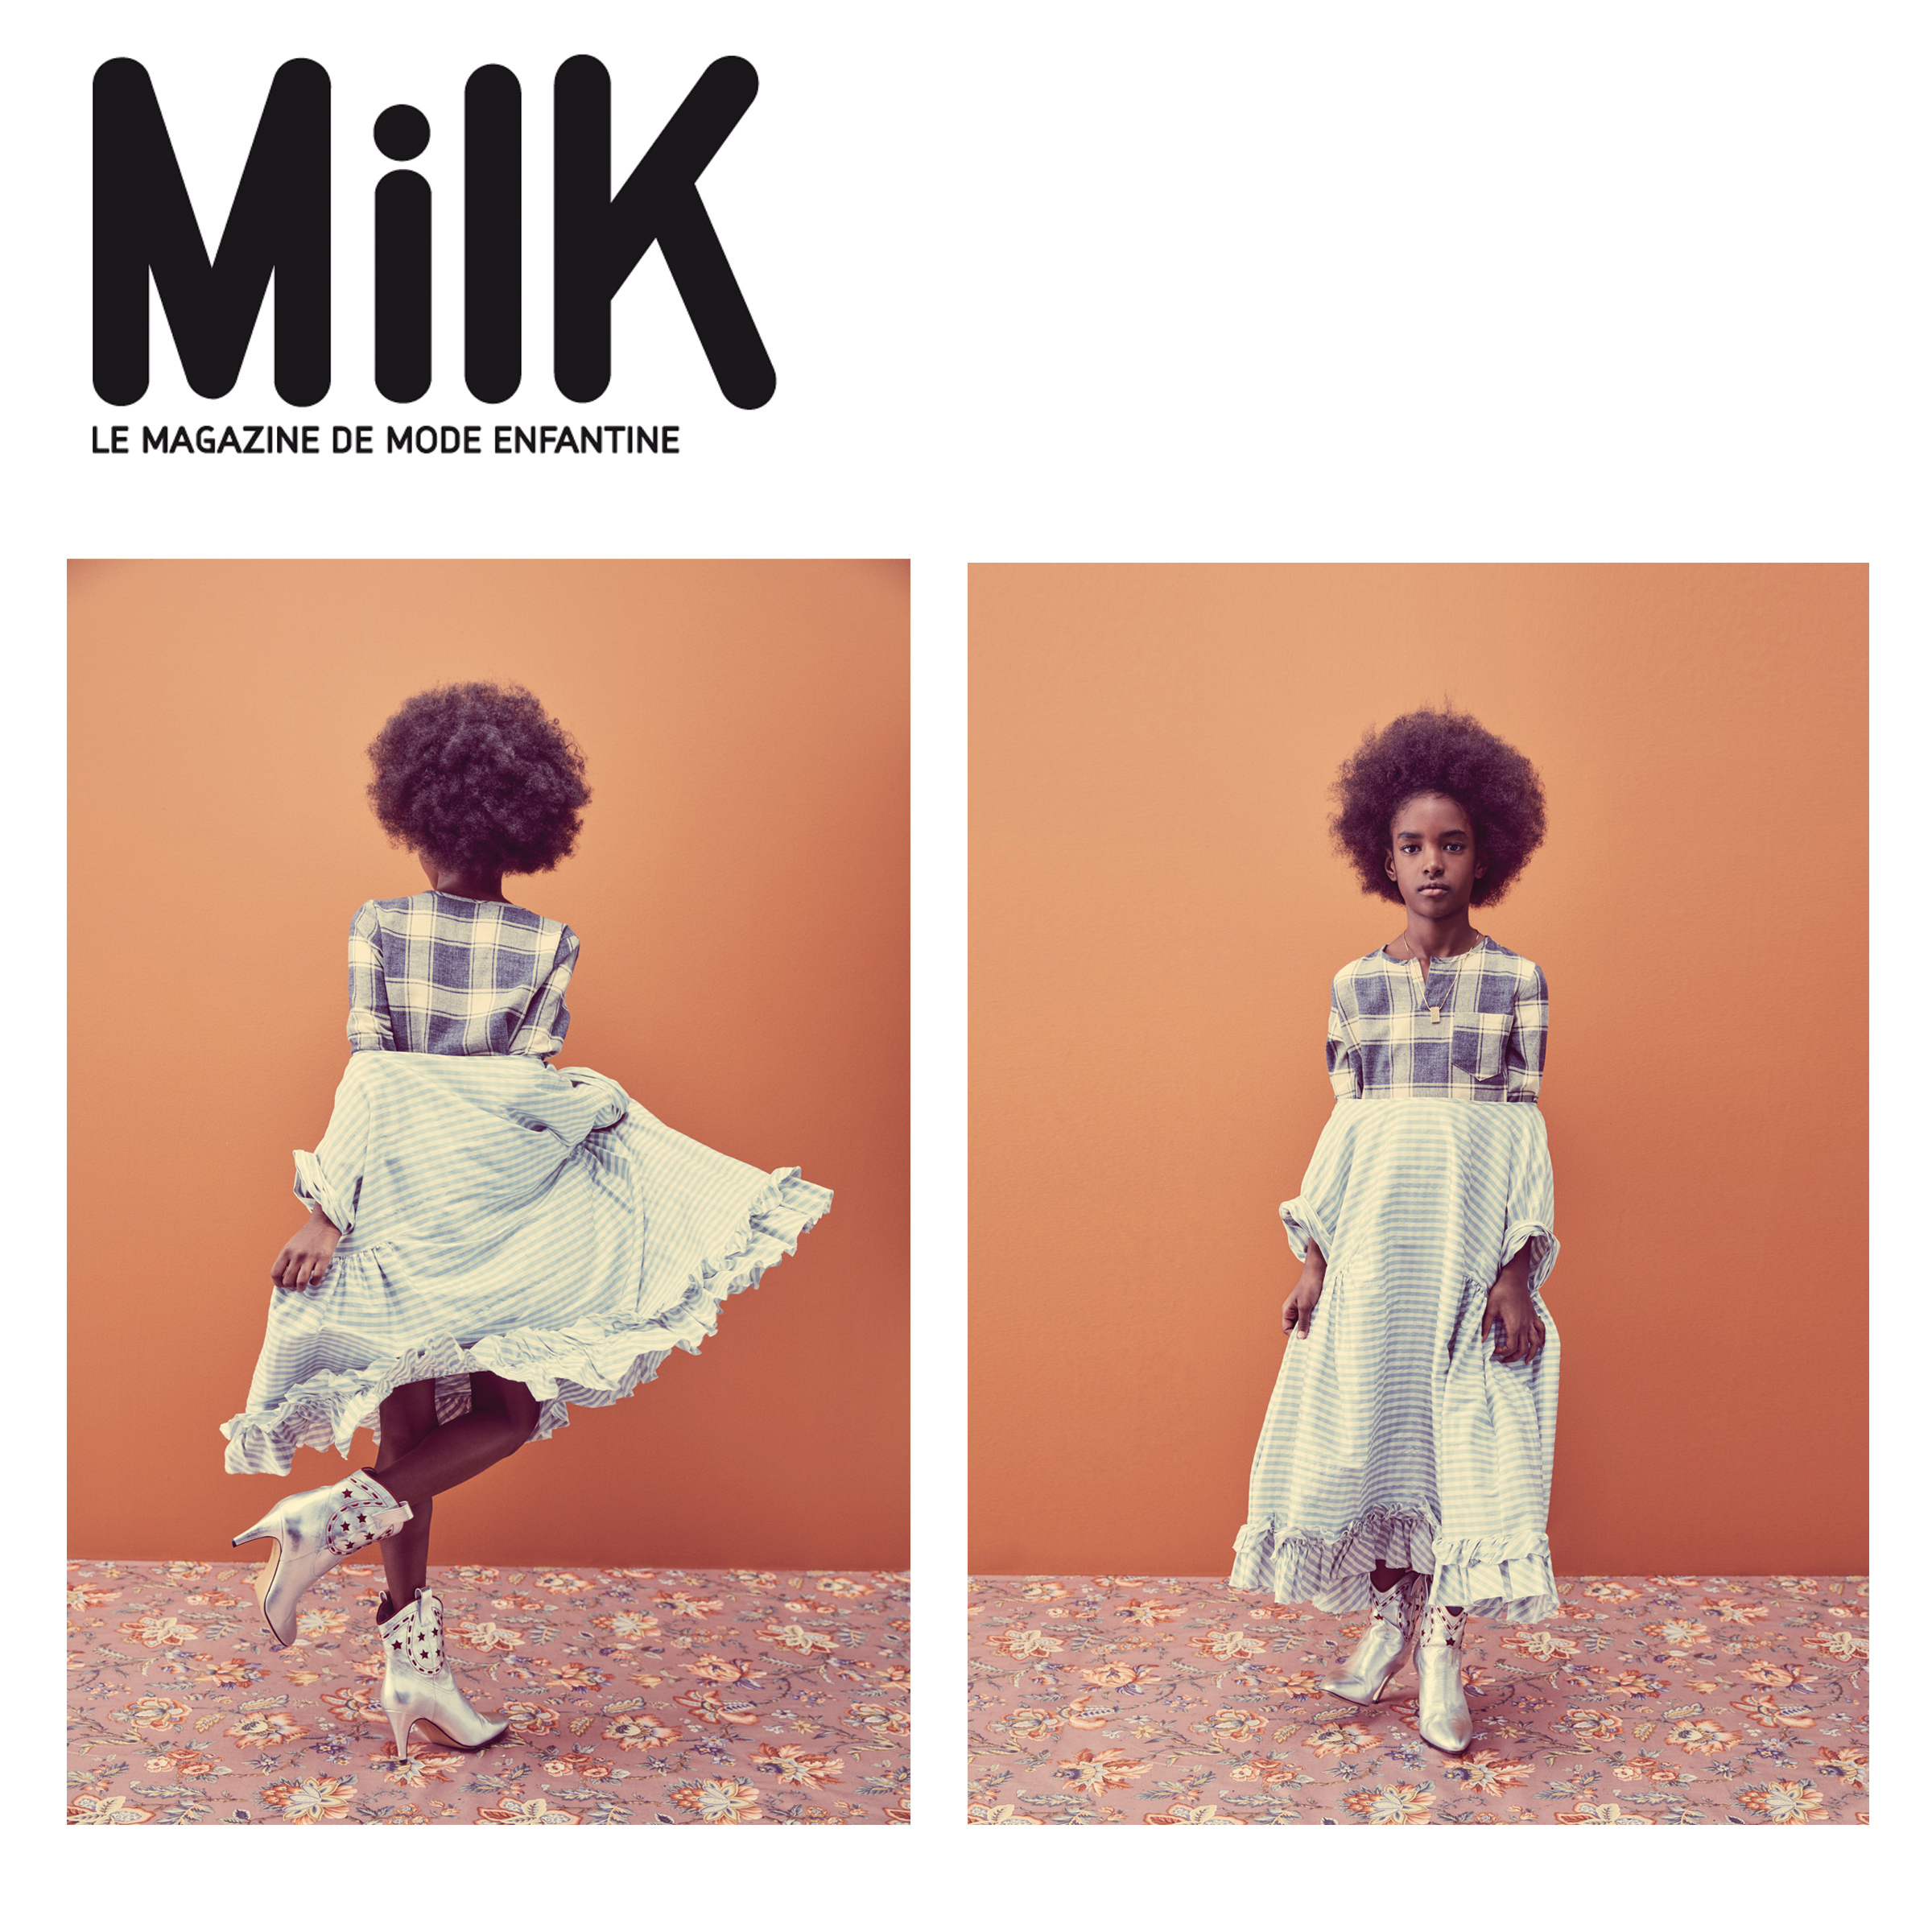 Kelsey Randall Milk Magazine Child kidswear specialty kids clothing bespoke custom babydoll dress gingham raw silk shantung short sleeve ruffle hem swing oversized natural hair afro cute silver cowboy boots floral carpet rug plaid shirt bright orange pumpkin made-to-measure luxury unique special emerging designer rising talent star ones to watch ethical sustainable handcrafted photographer amanda m pratt styling shelley m young art director kt smail